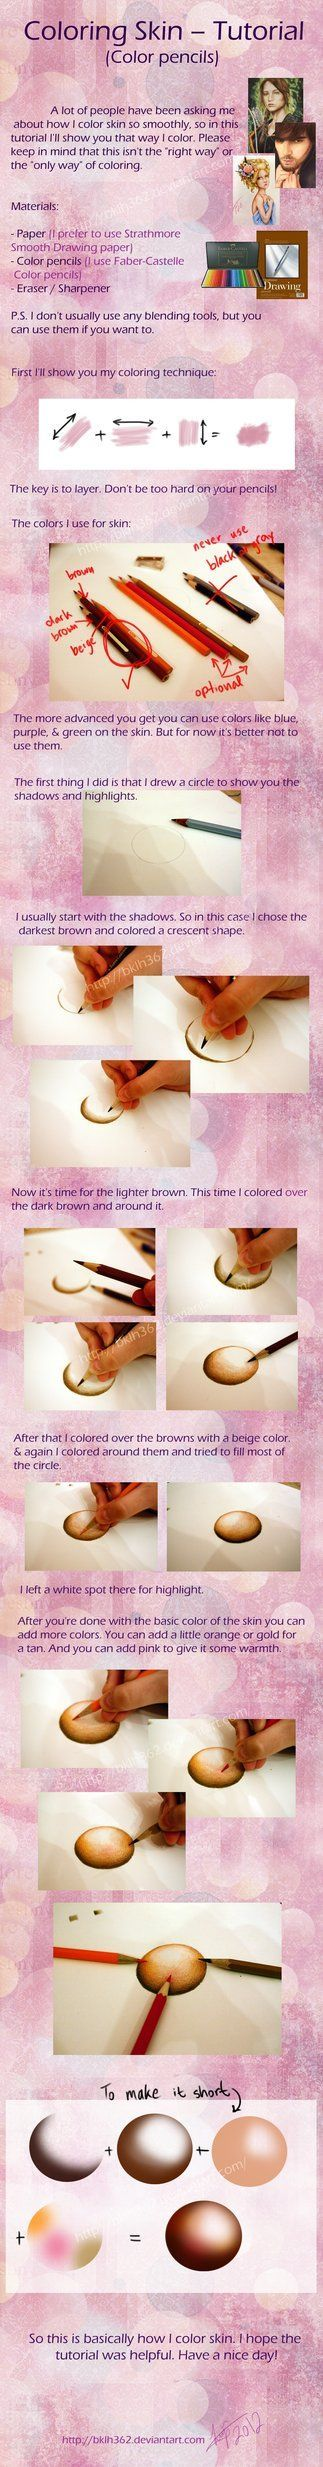 how to draw skin with colored pencils